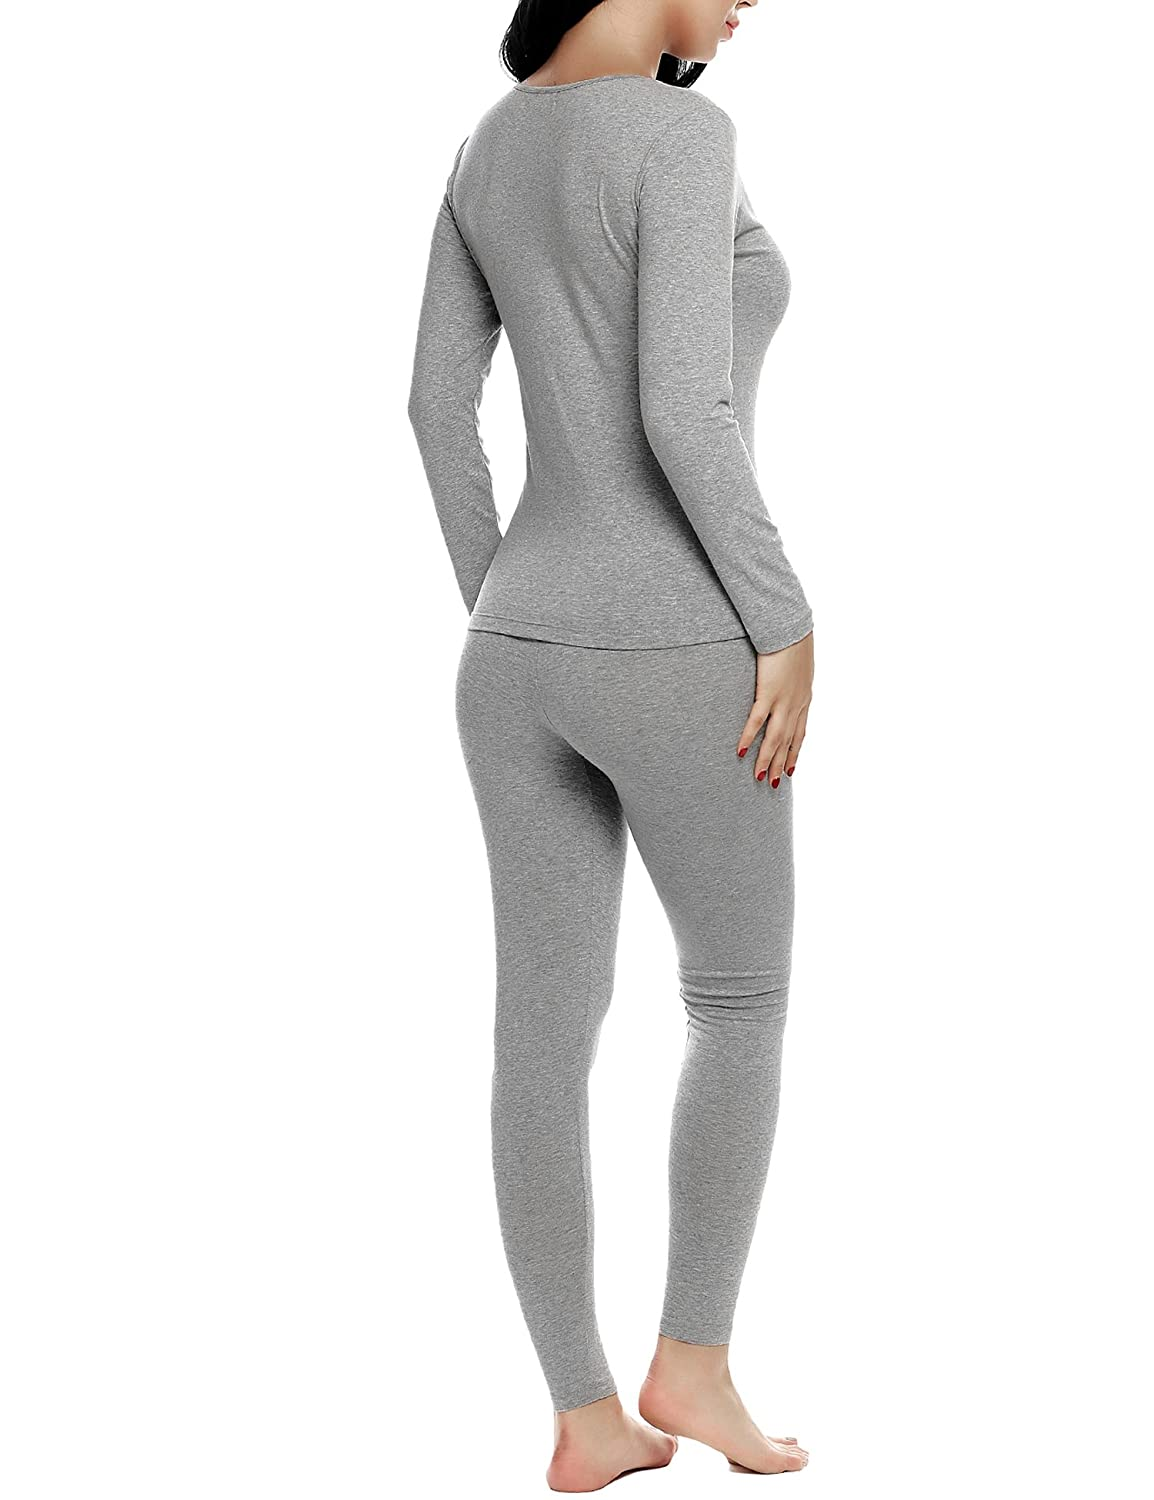 61a3b76d032c Hufcor Women 2 Piece Fleece Lined Long John Thermal Underwear Set S-XXXL at  Amazon Women's Clothing store: